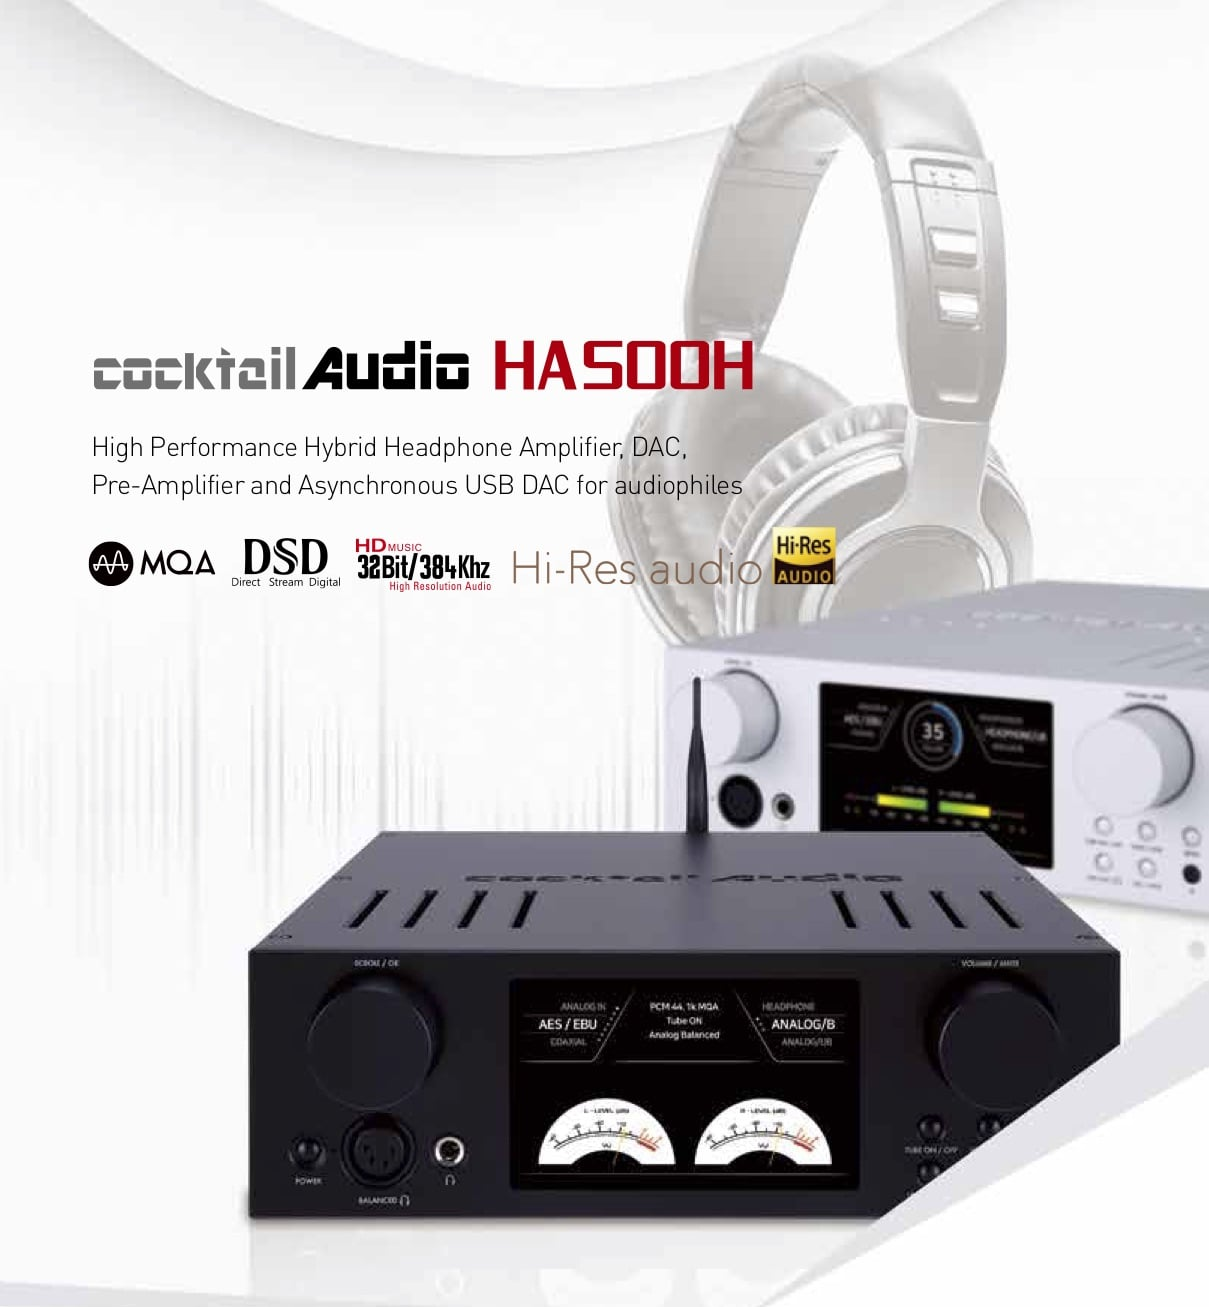 Cocktail Audio HA500H